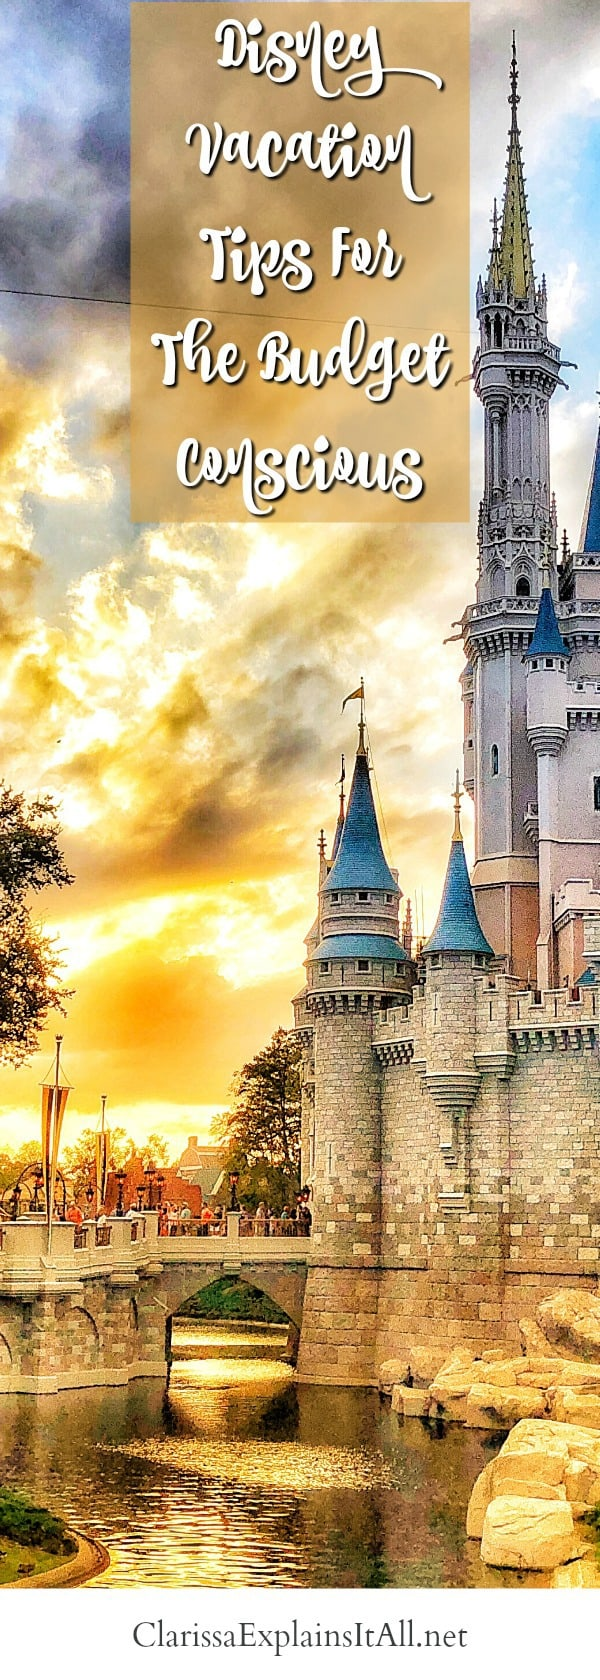 Disney Vacation Tips for the Budget Conscious